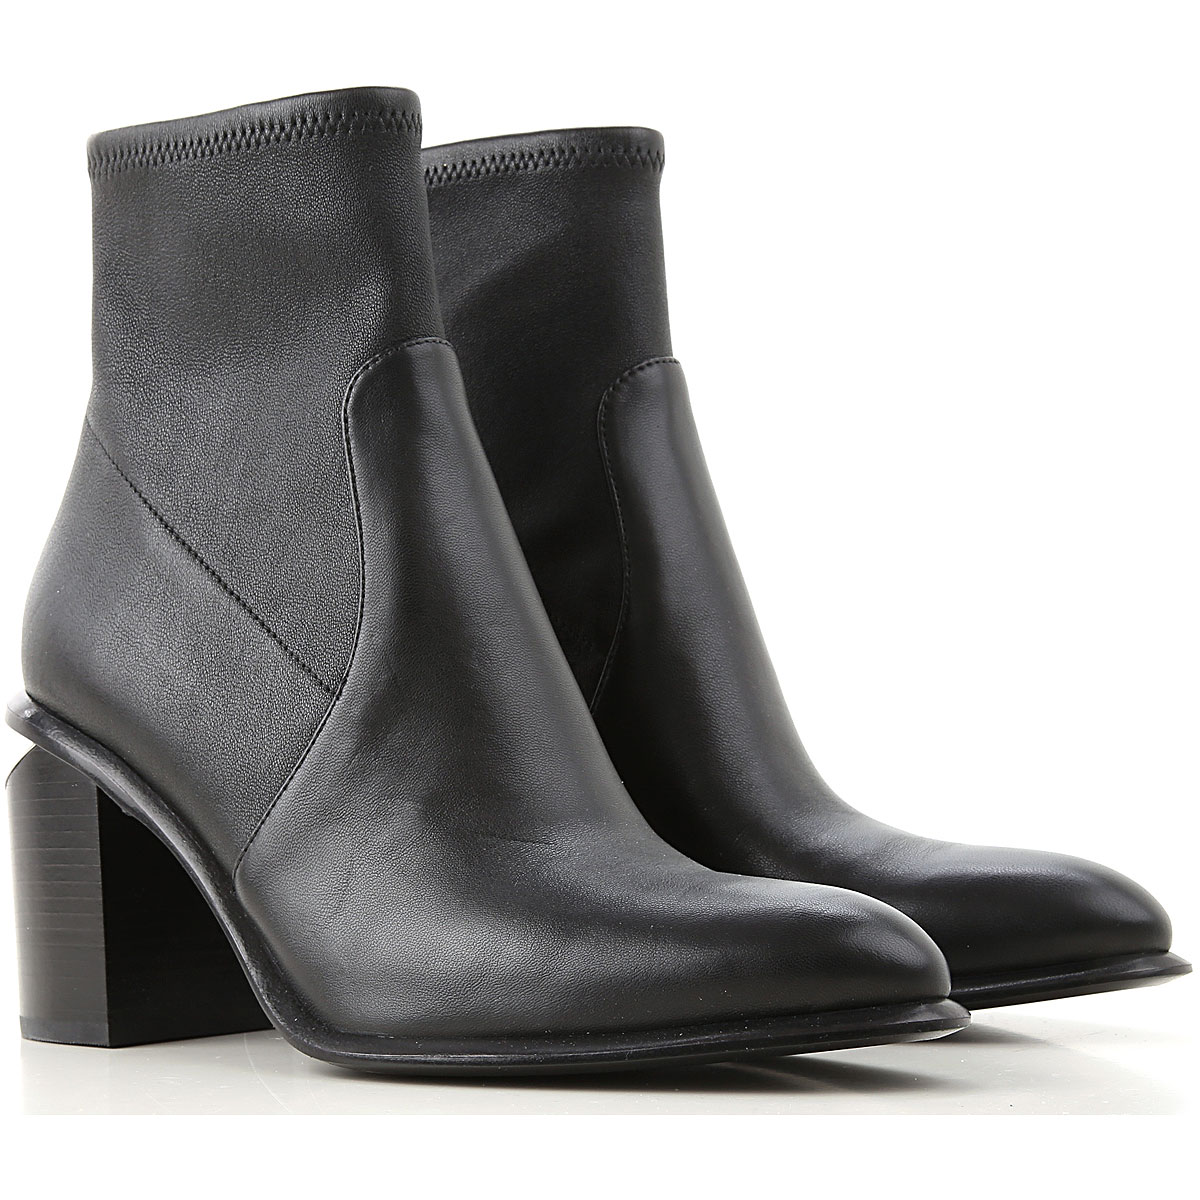 Alexander Wang Boots for Women, Booties On Sale, Black, Leather, 2019, 11 8 8.5